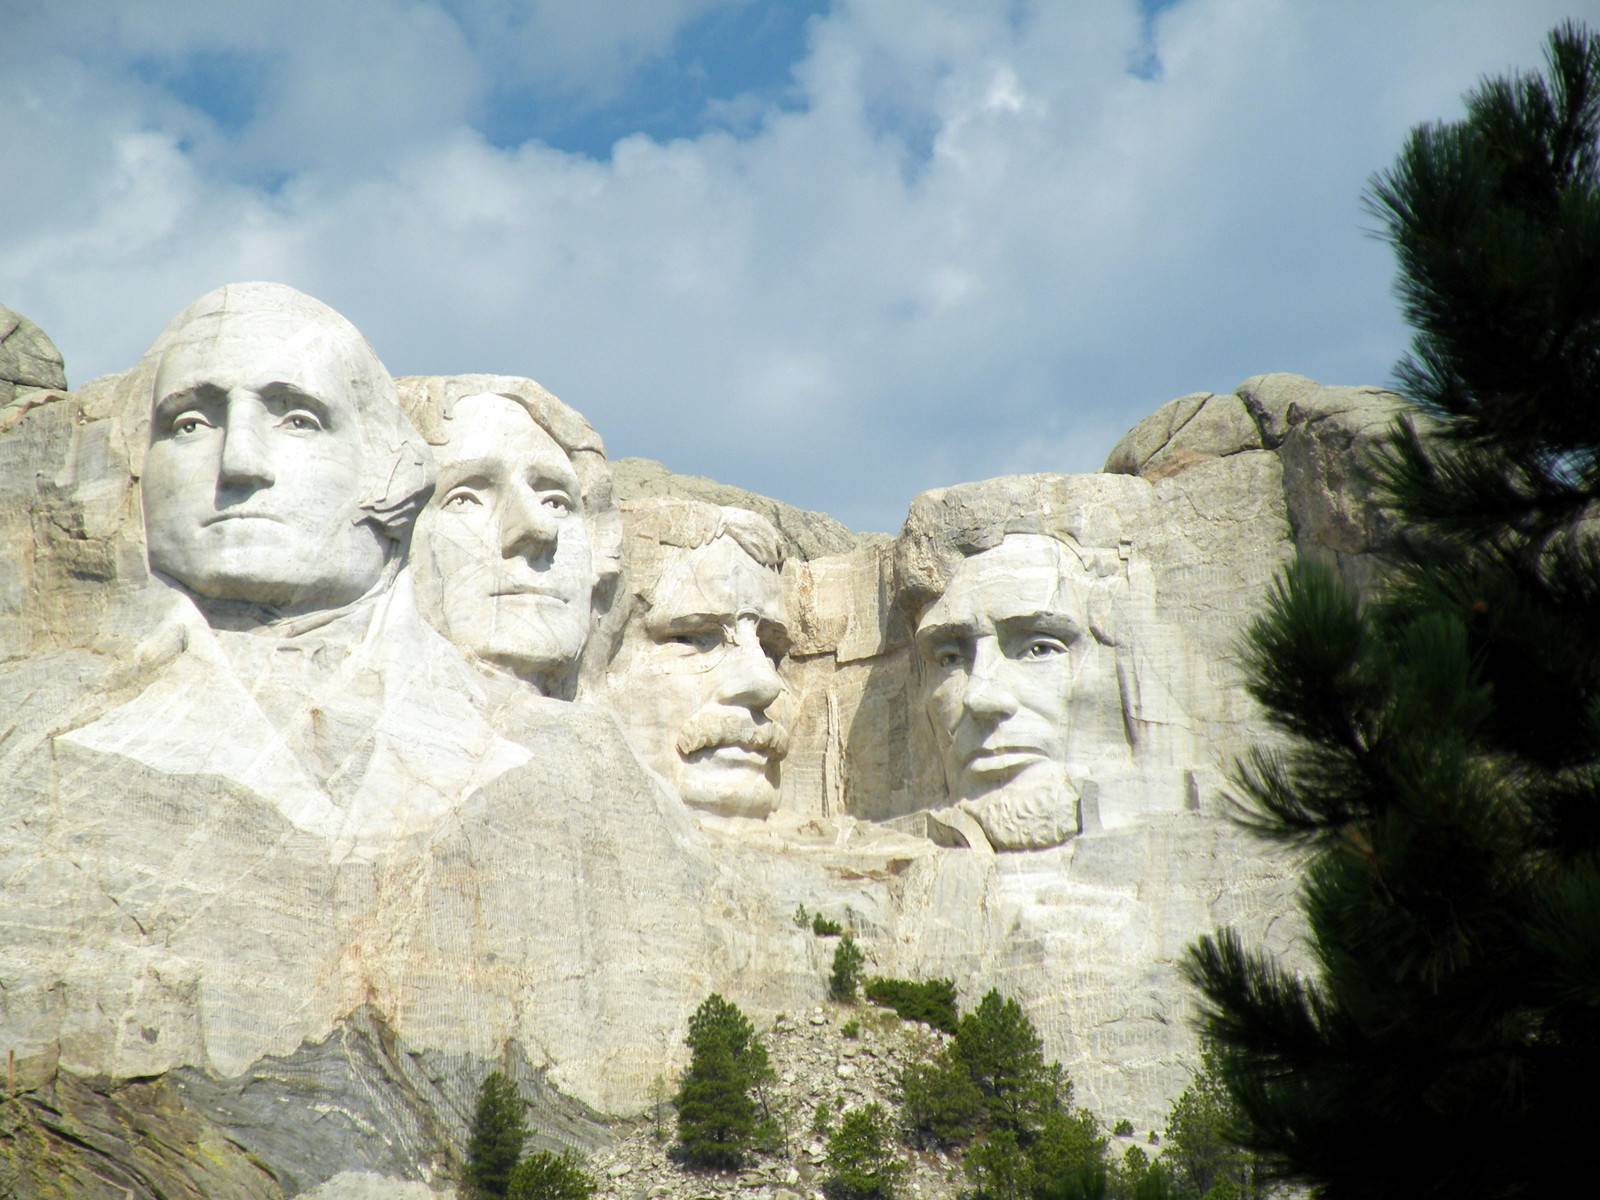 9-Day West Coast Tour From Denver: Wind Cave, Badlands, Yellowstone, Mt Rushmore & Grand Canyon